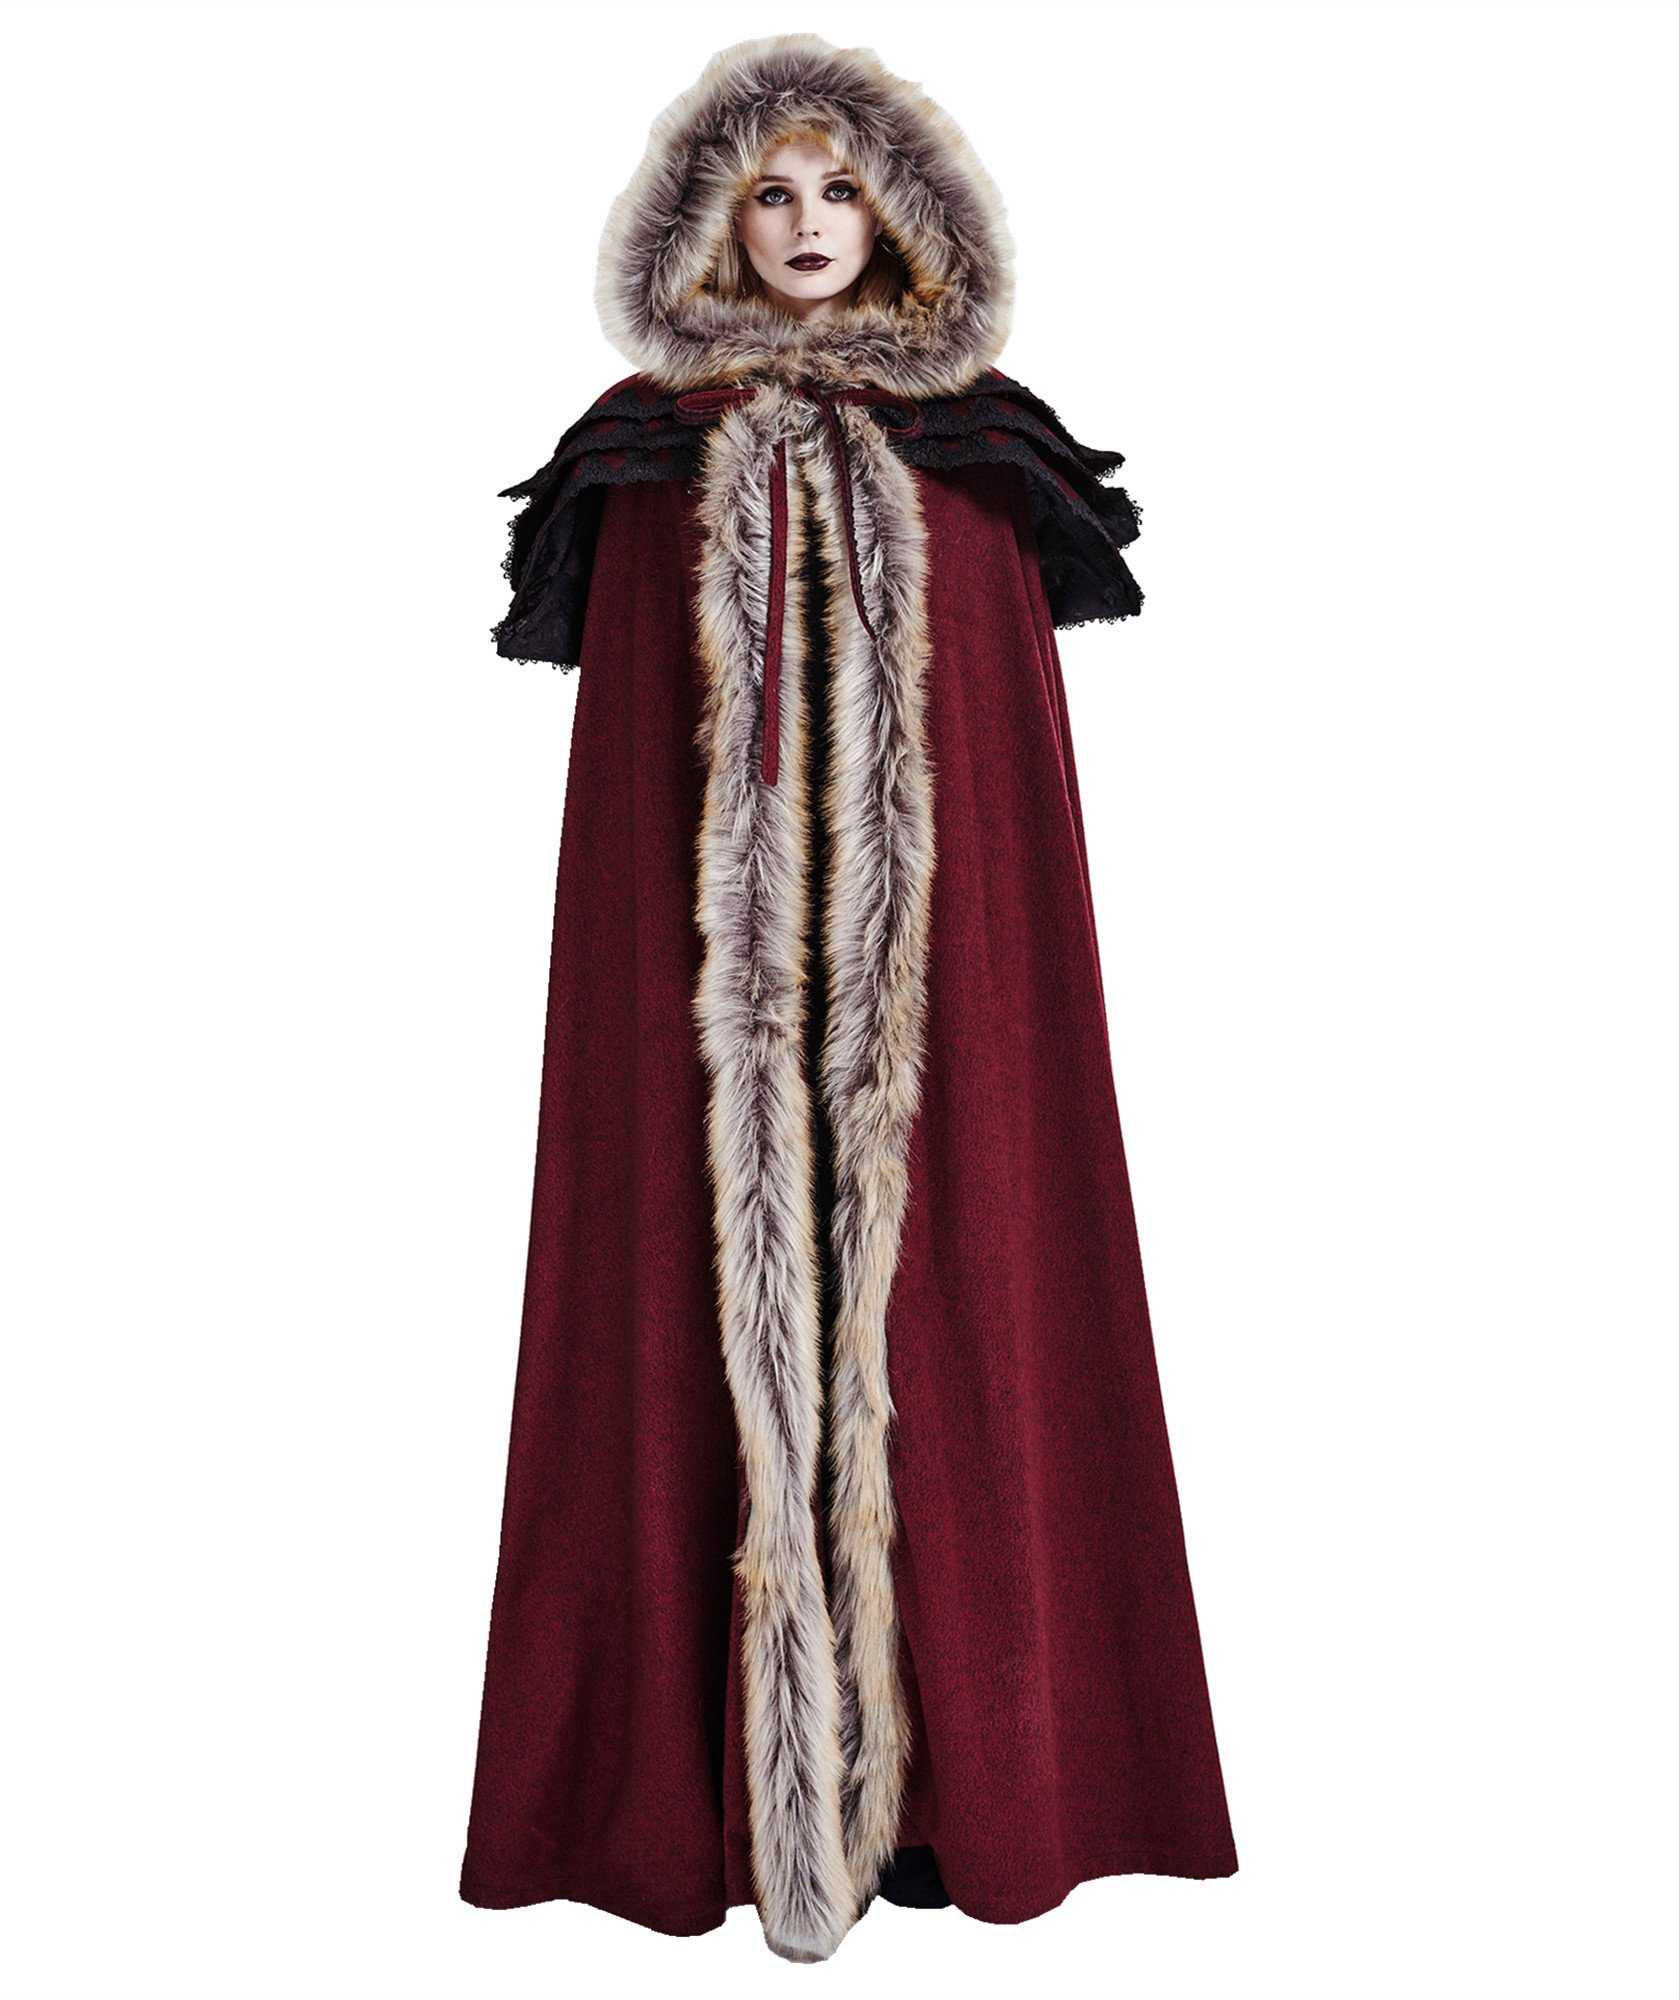 Punk Rave Women's Medieval Fluffy Faux Fur Trimmed Cape Full Length Hooded Cloak Coat(Red) by Punk Rave (Image #1)